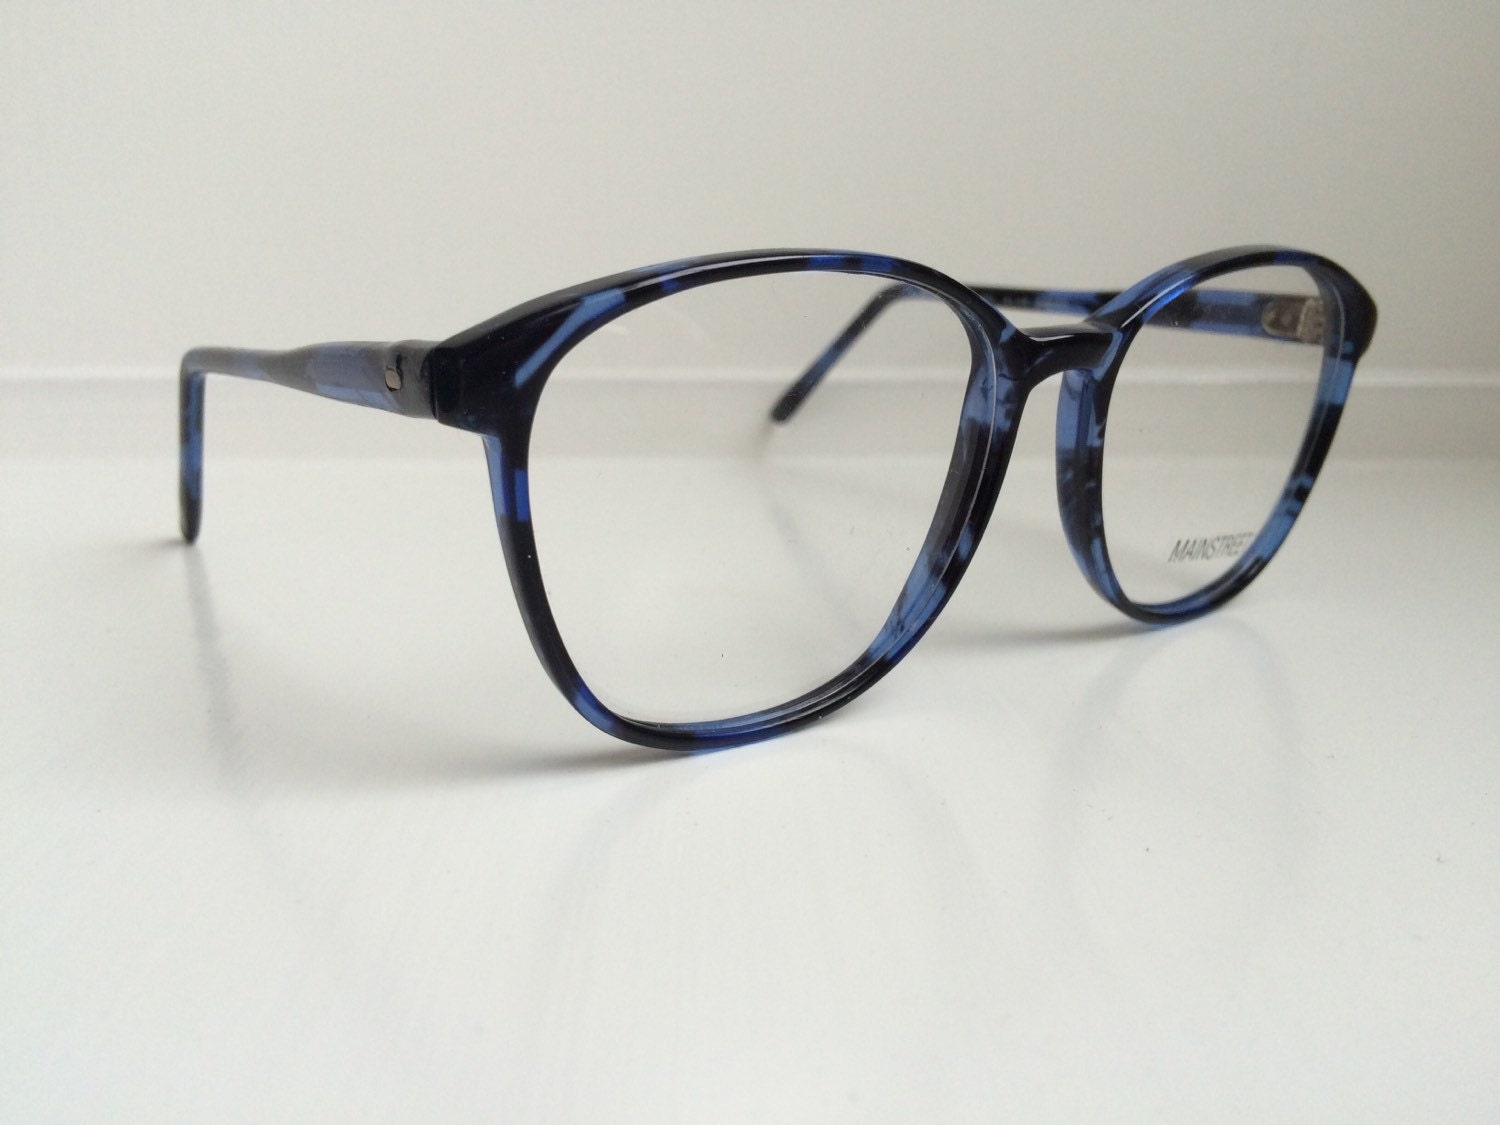 Blue Black Glasses Frames : Vintage Eyeglass Frames Oversized Blue Black Glasses Frames